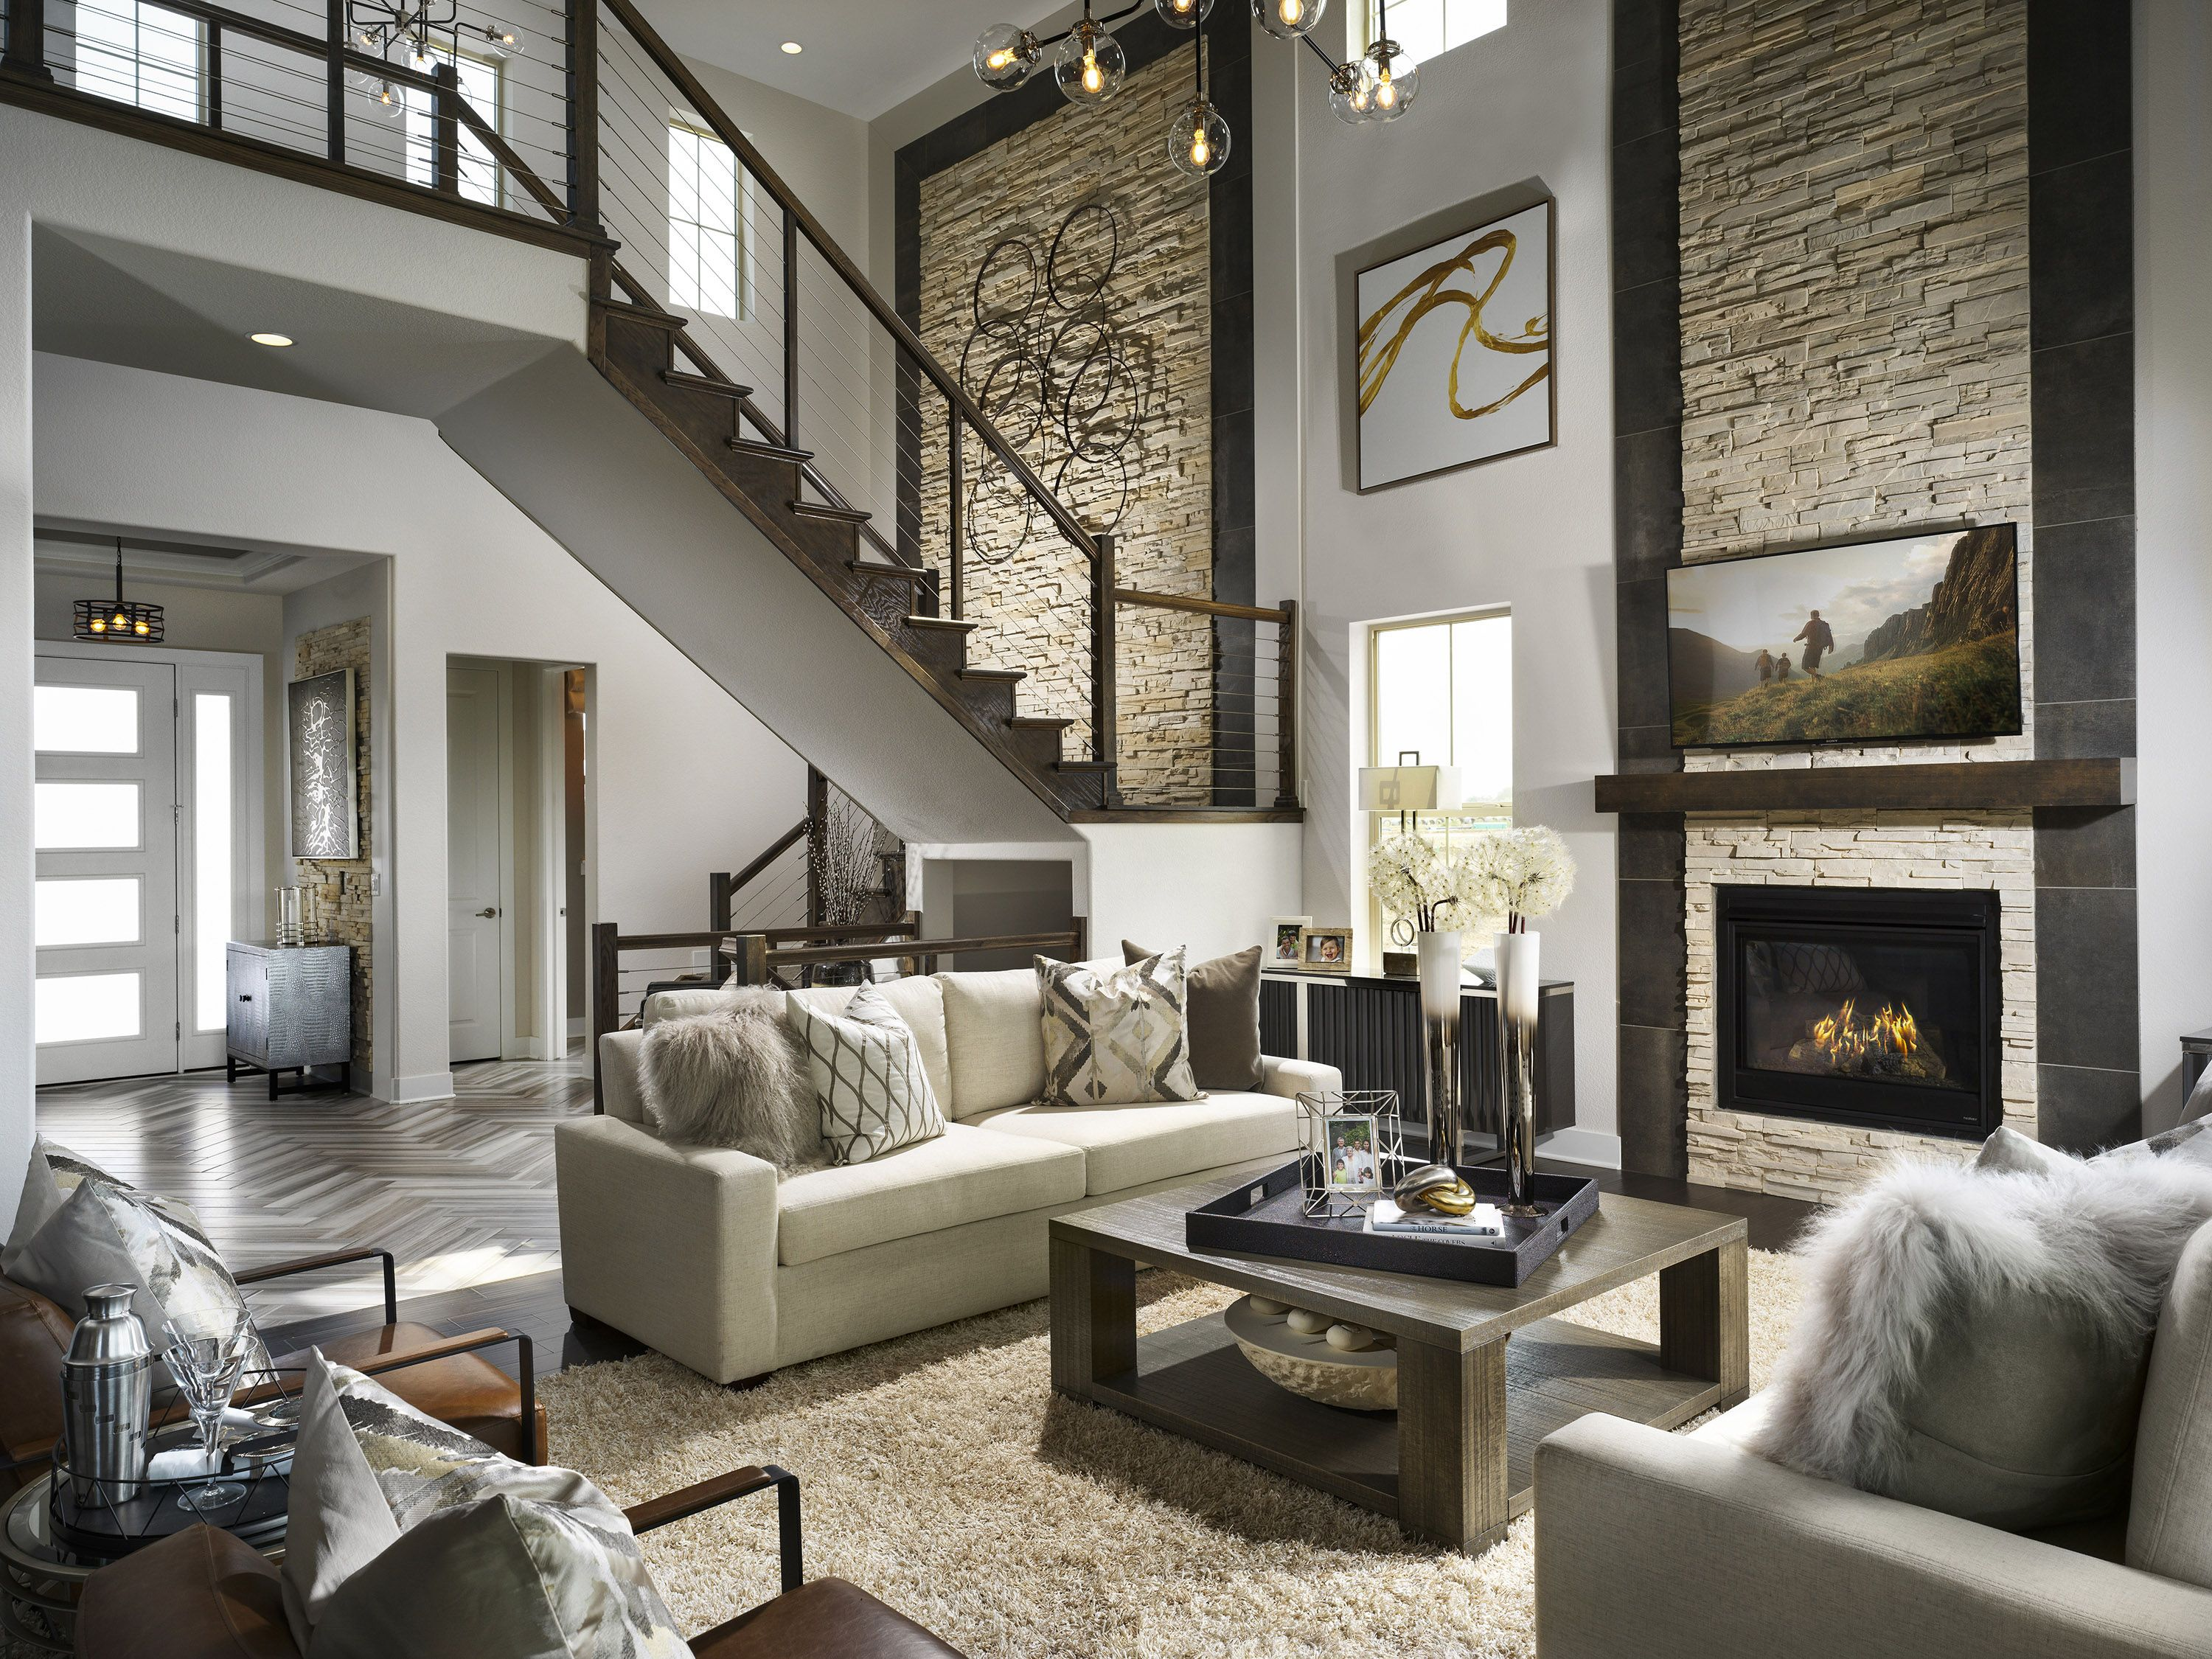 10 Interior Design Tips For Mixing Metals And Textures Great